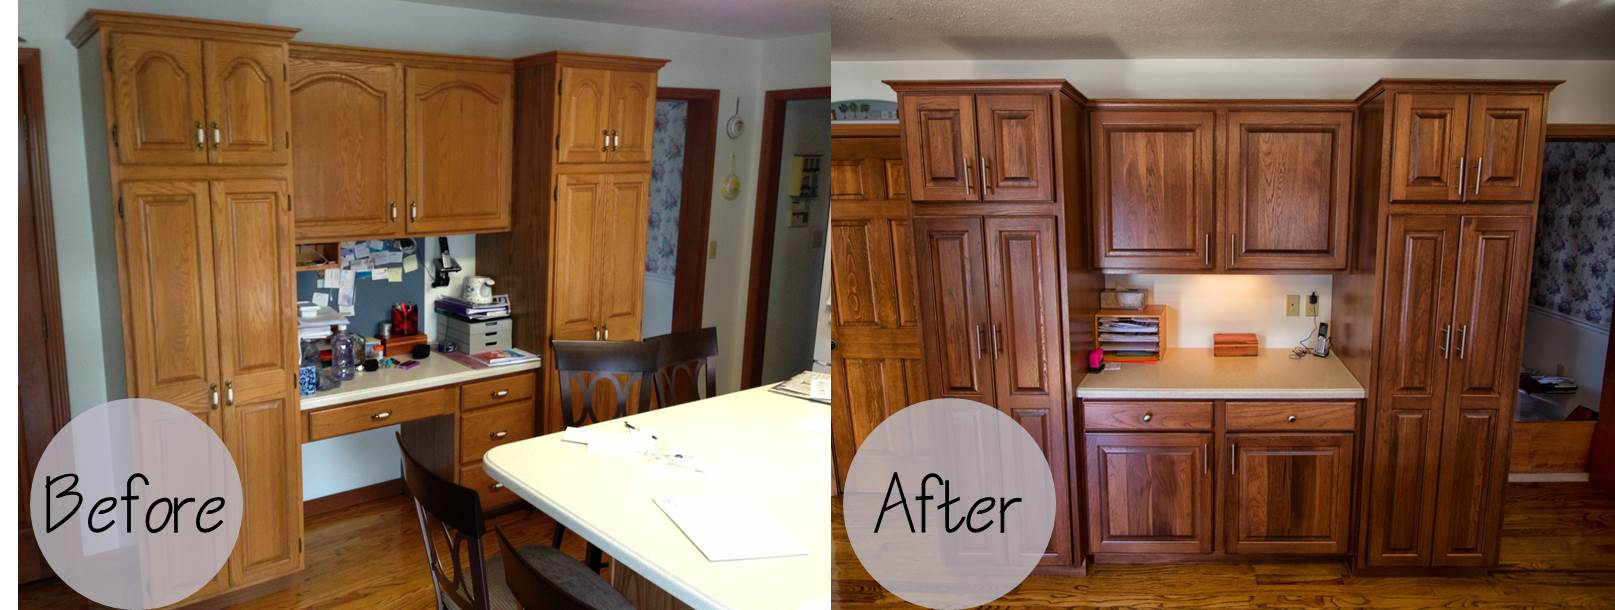 refinished kitchen cabinets before and after cabinet refacing wheeler brothers construction 25289